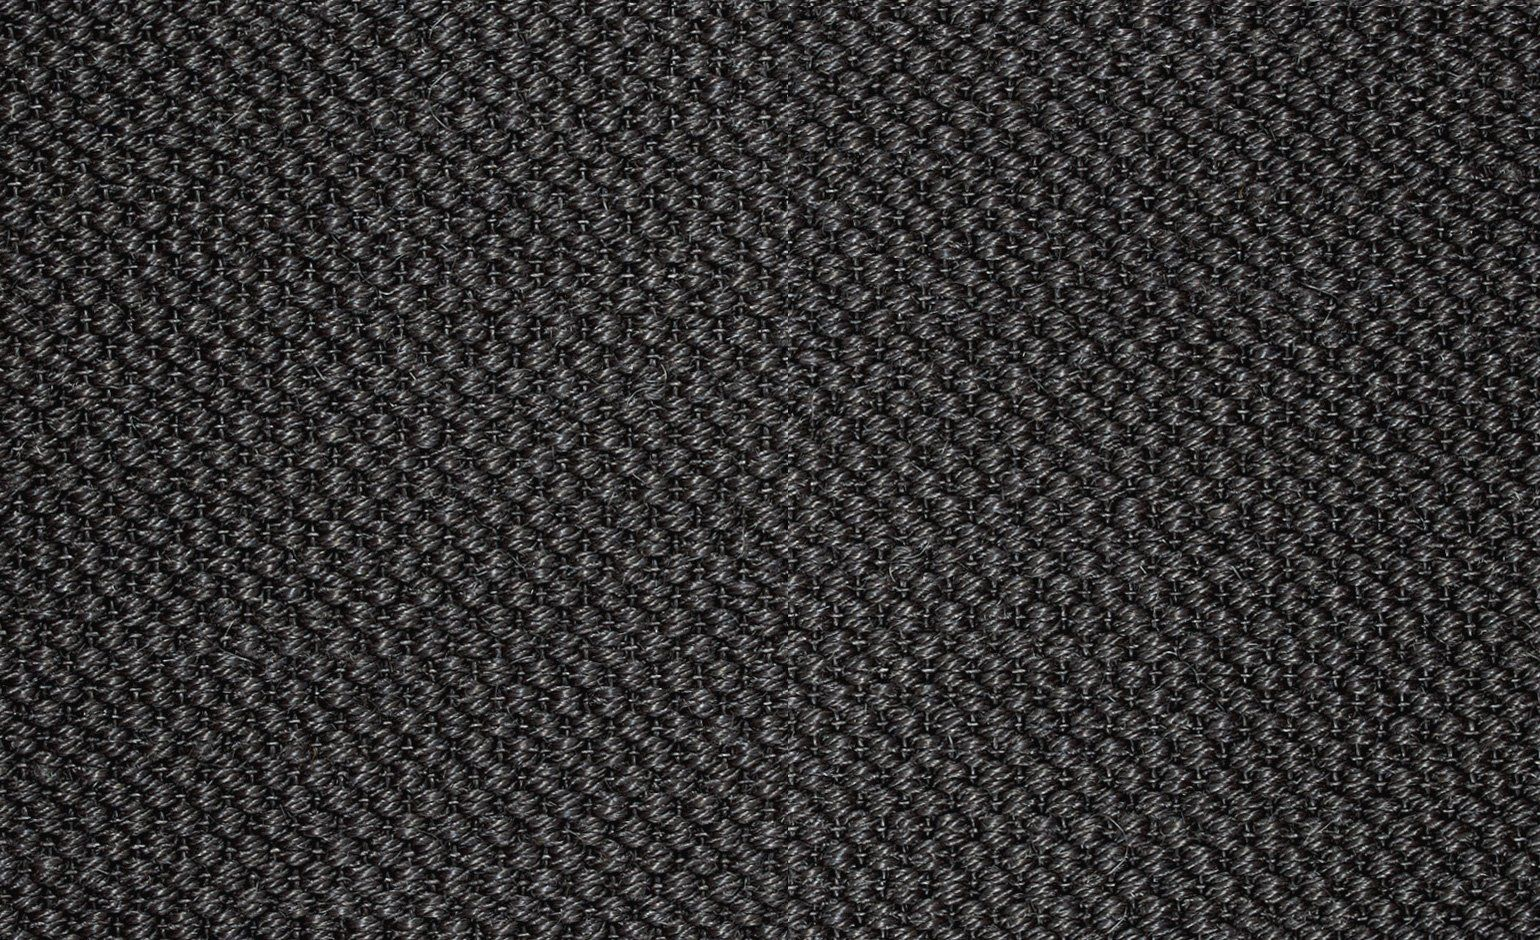 Sisal TIGRA, col anthracite, rouleau 4 m - Sol naturel - Collection Sol - Saint Maclou